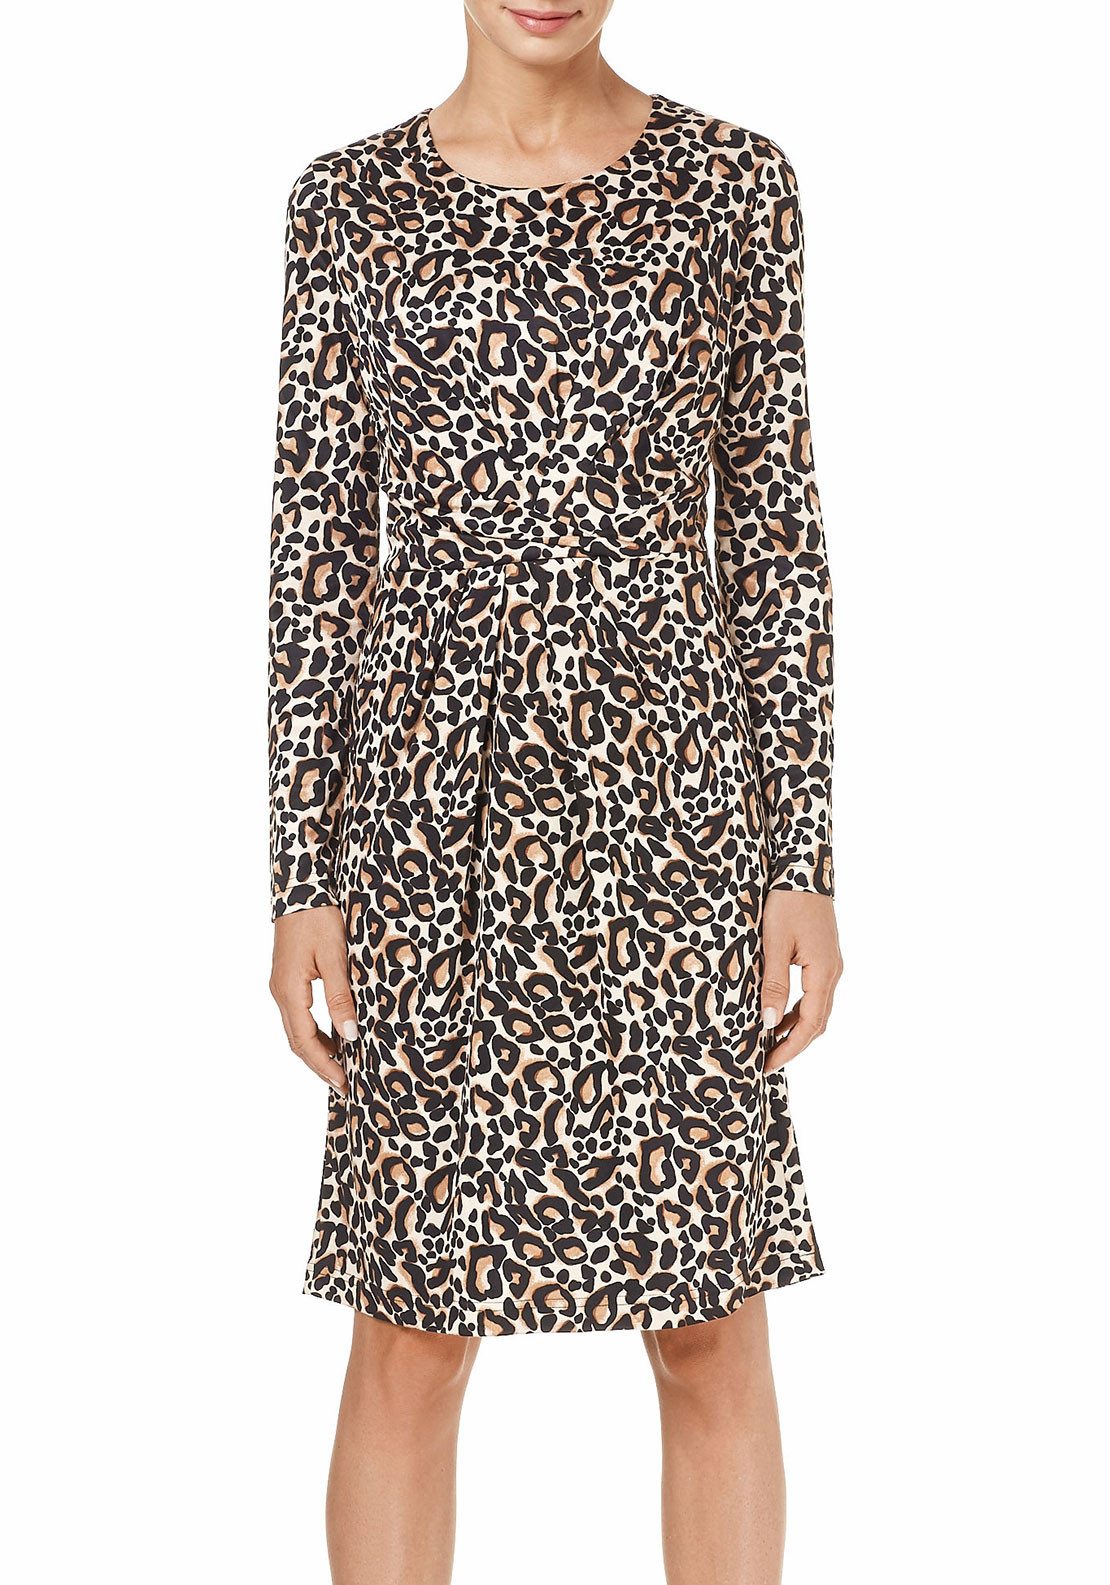 Gerry Weber Animal Print Dress, Beige & Black